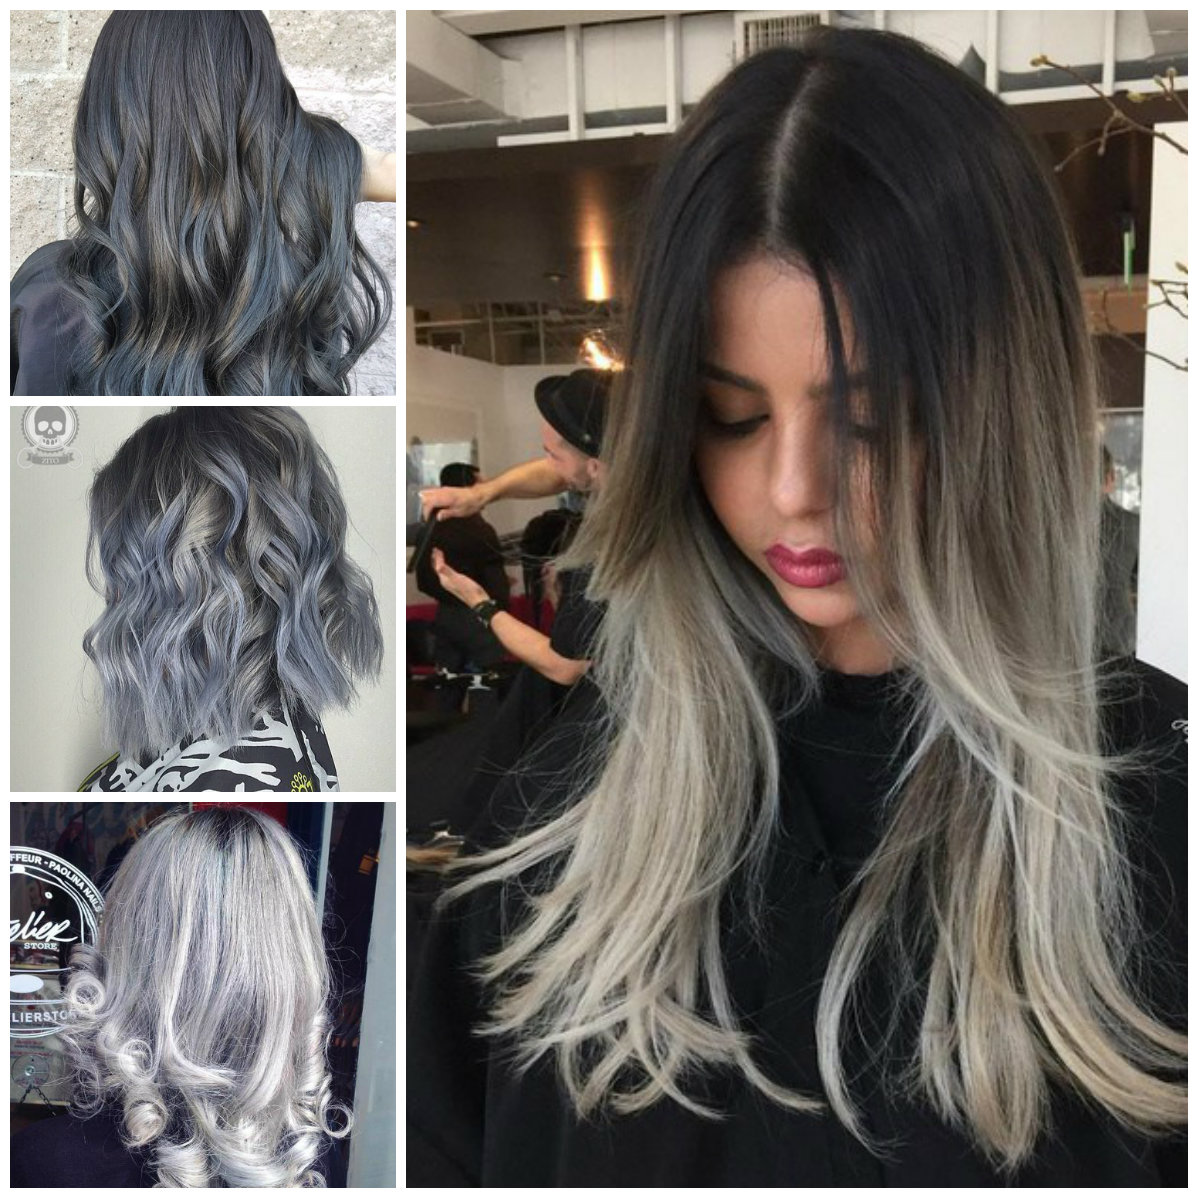 Incredible Shades of Grey Hair Trend for 2017